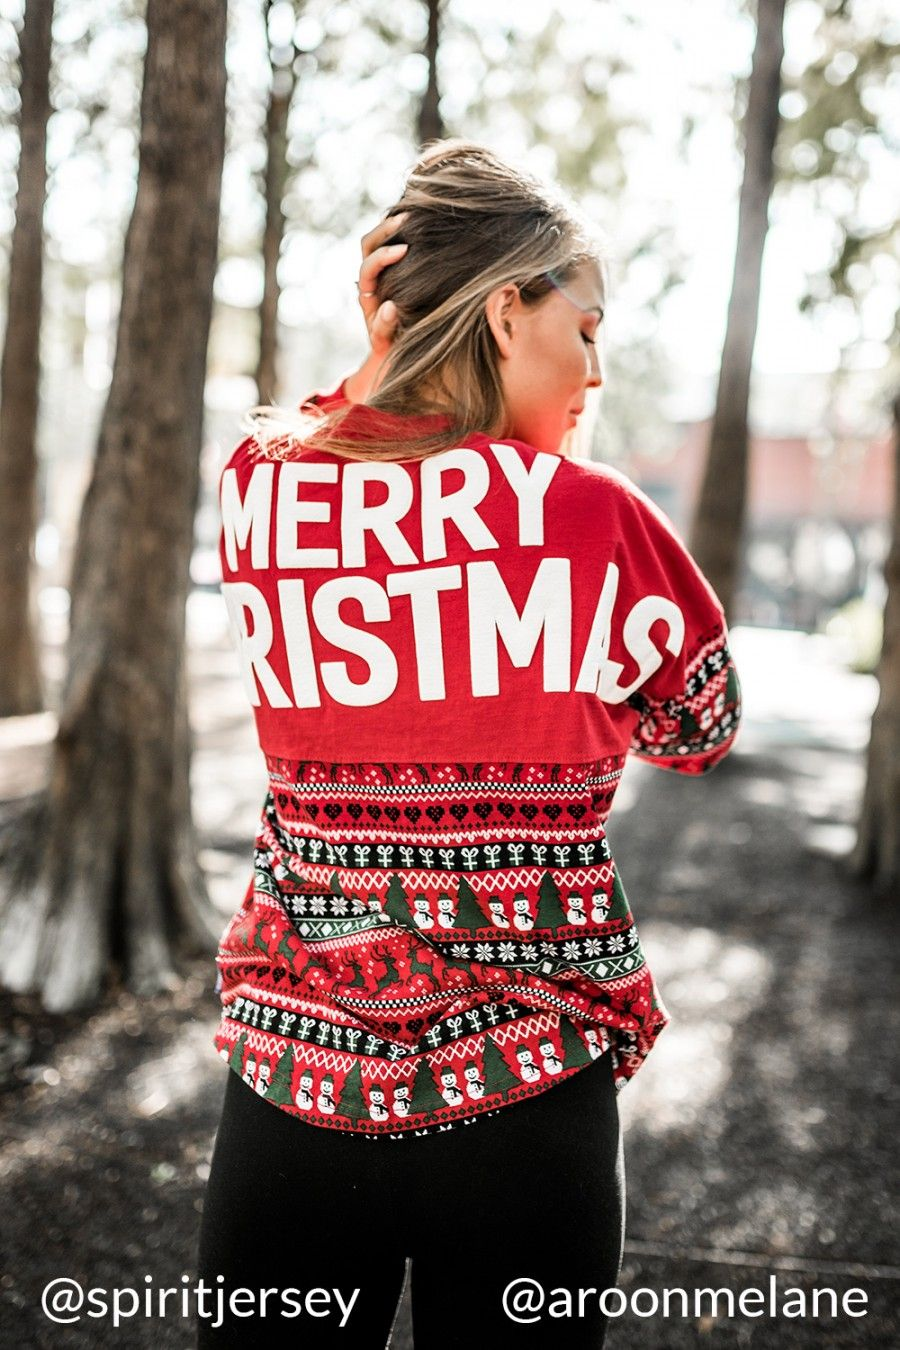 Merry Christmas Christmas 2016 Red Ugly Christmas Spirit Jersey Red Christmas Print-XSM-front-print-Yes-Snow Flake-Left Chest